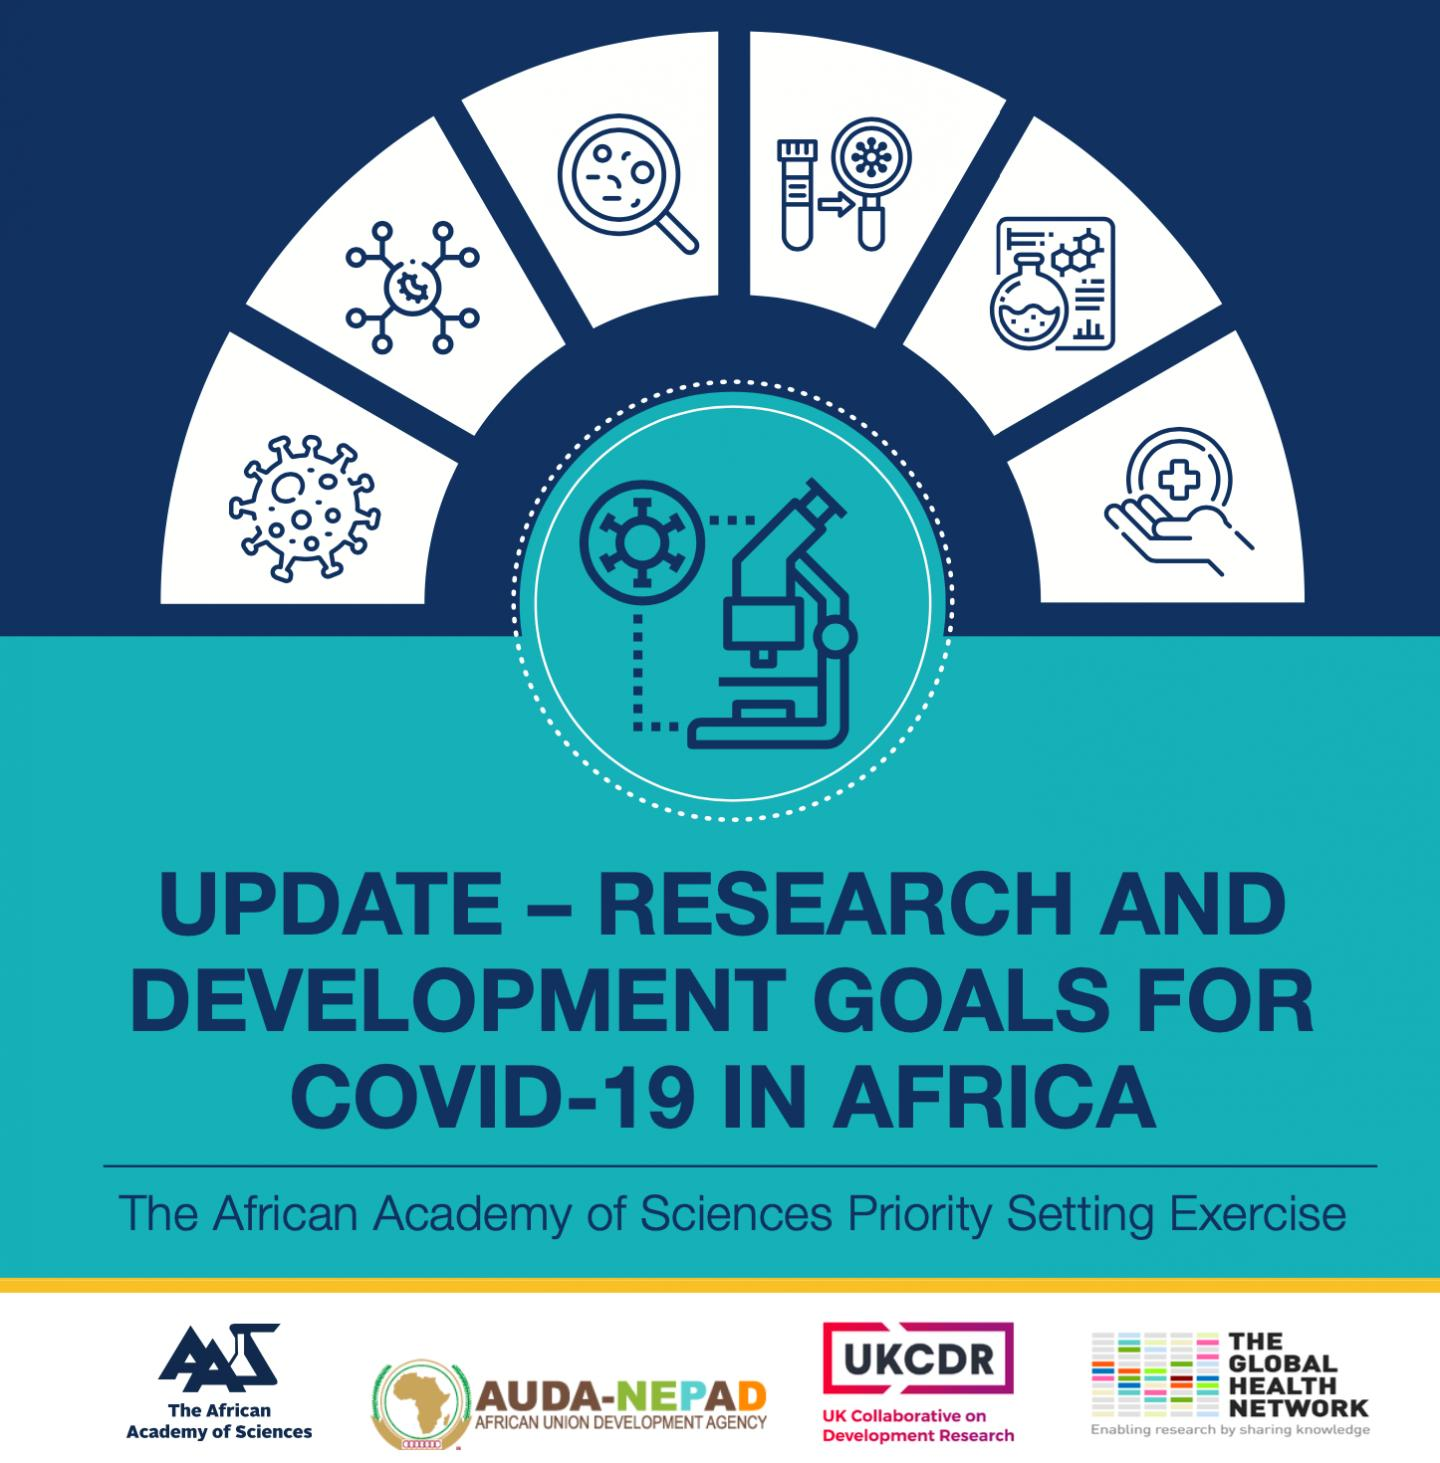 Research and Development Goals for Covid-19 in Africa